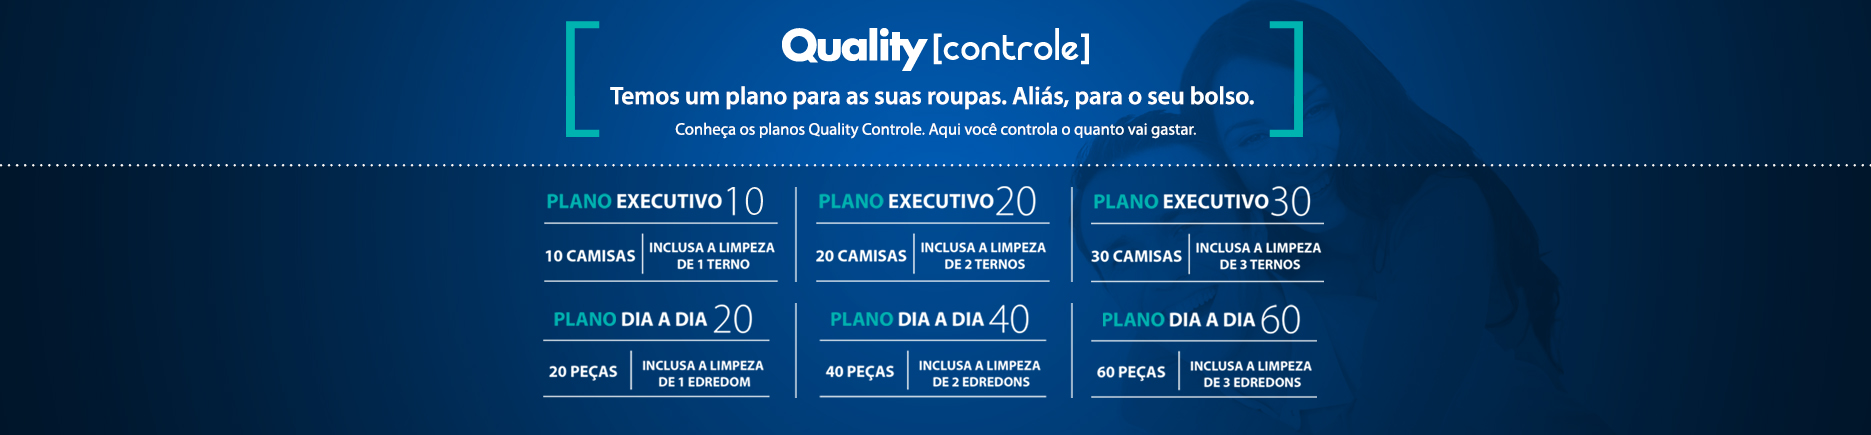 Banner Plano Quality controle